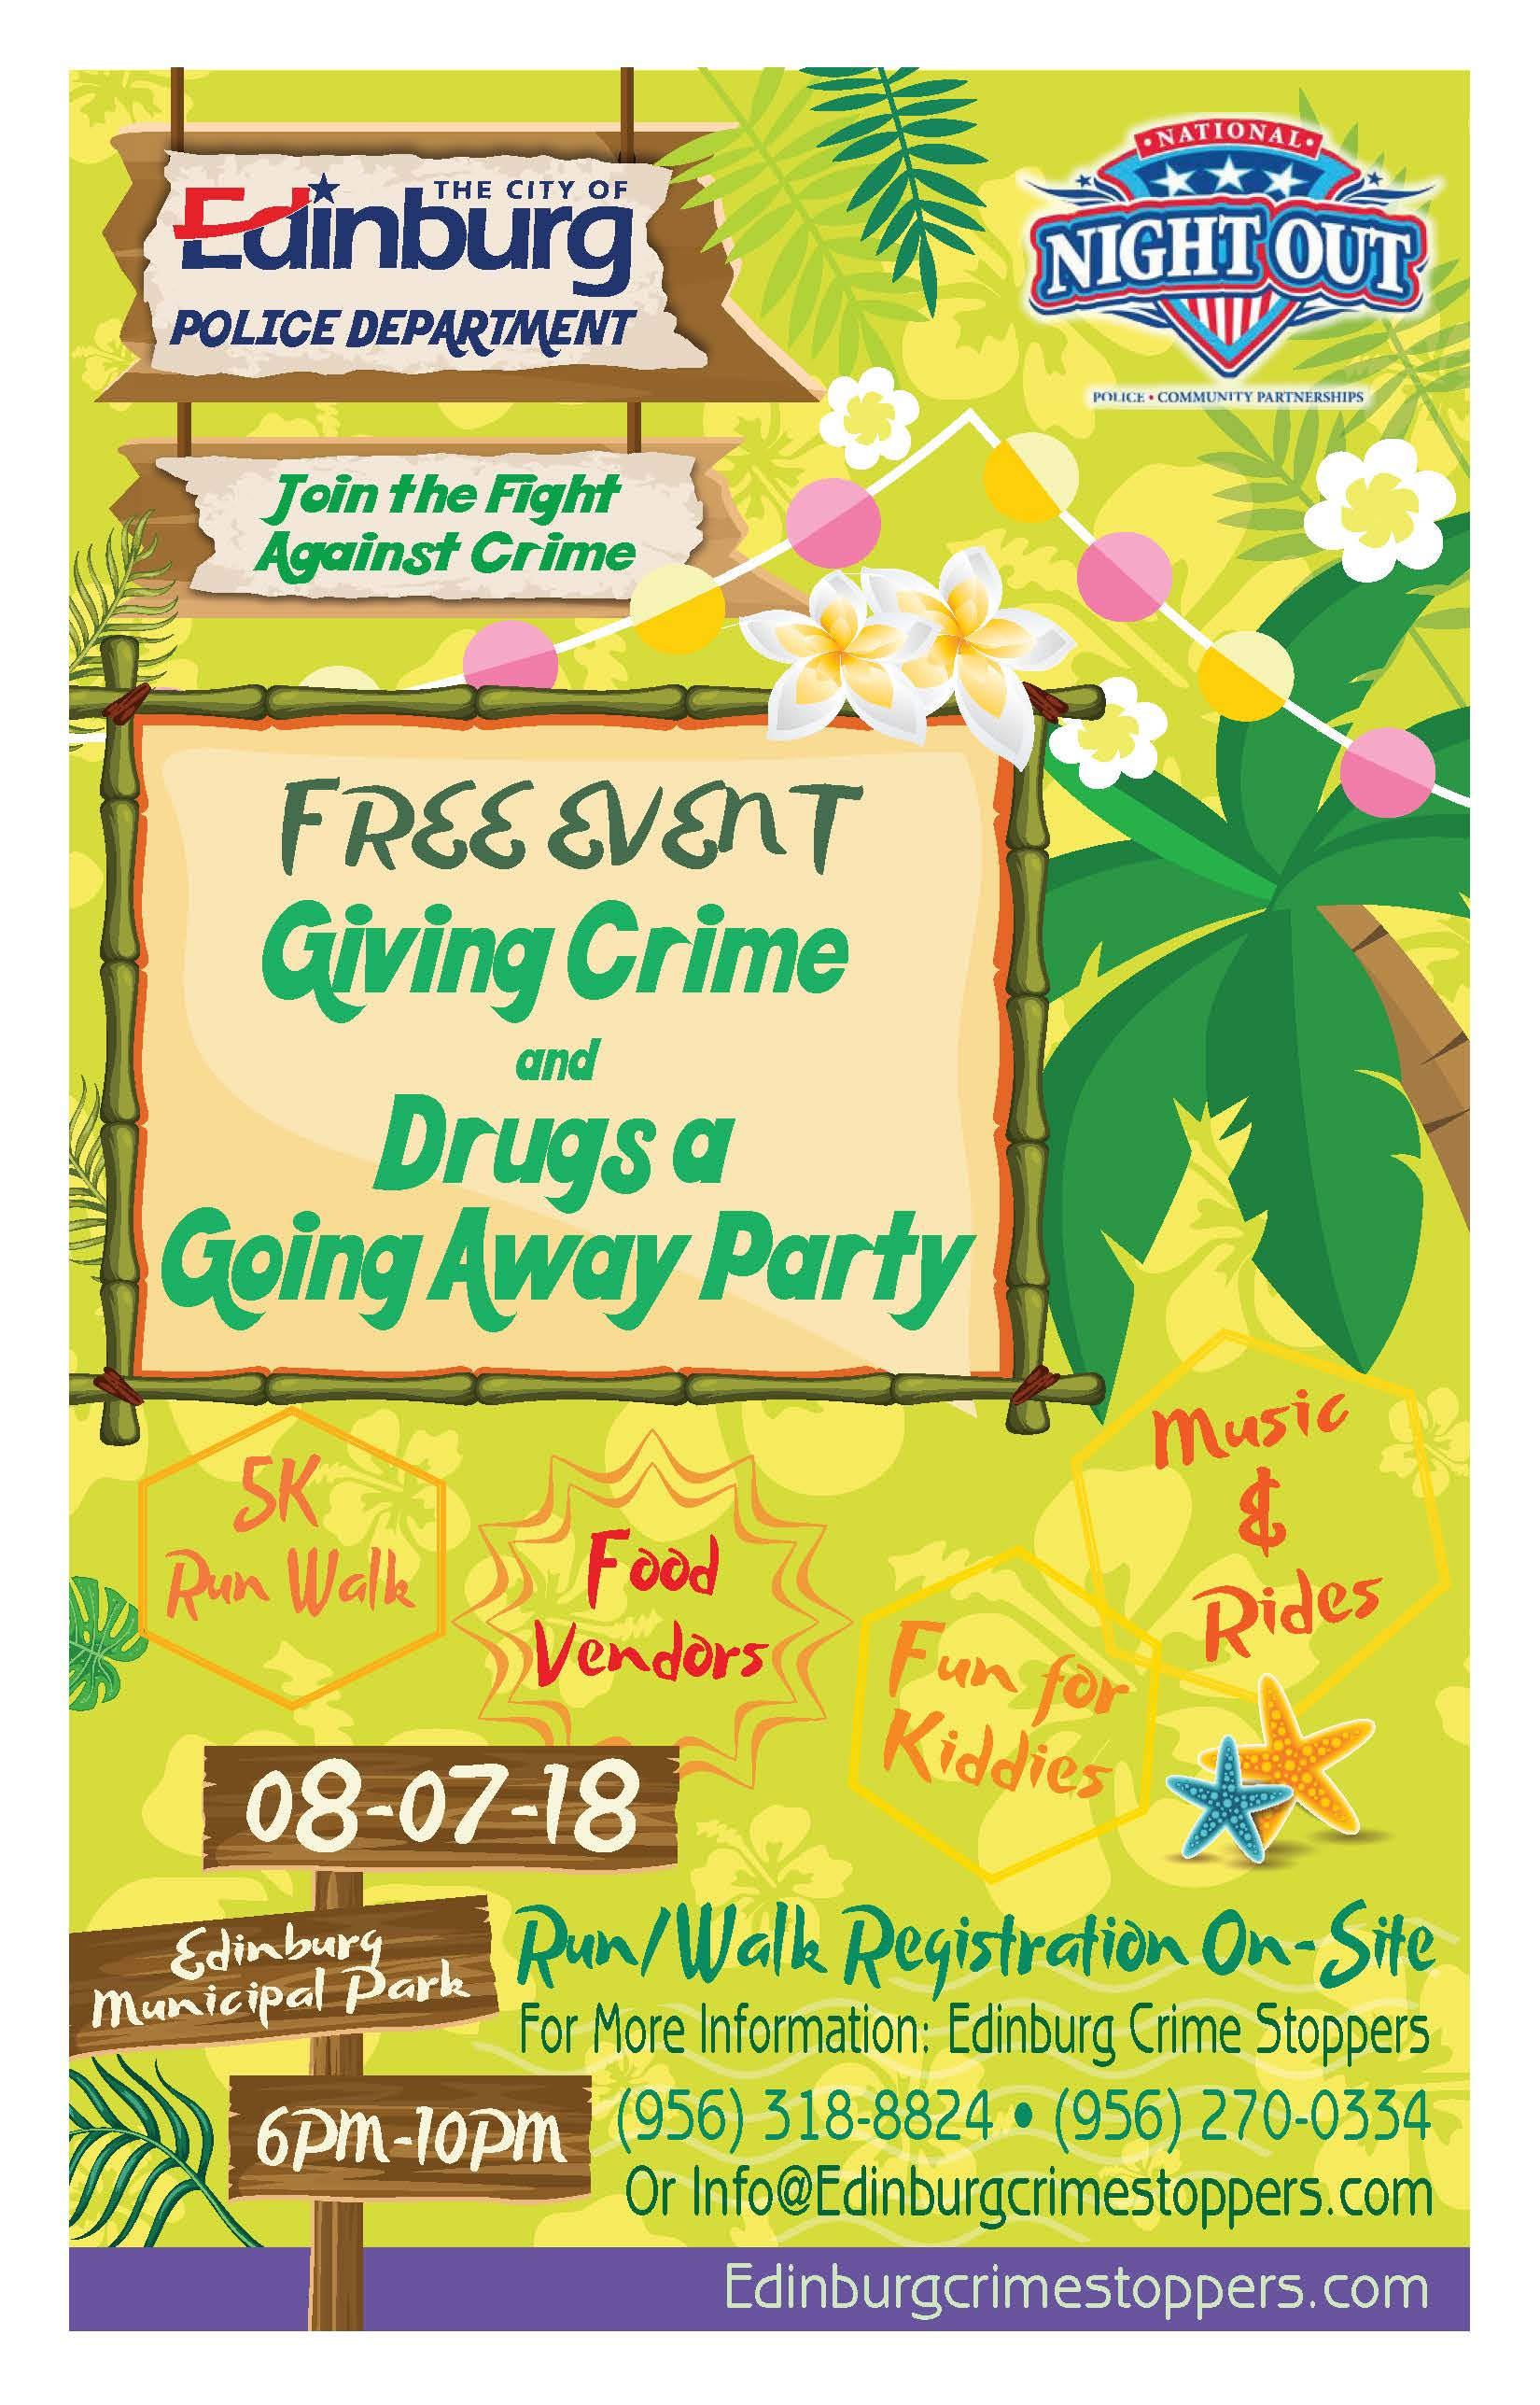 Vendors interested please contact the Edinburg Crime Stoppers at 9562700334